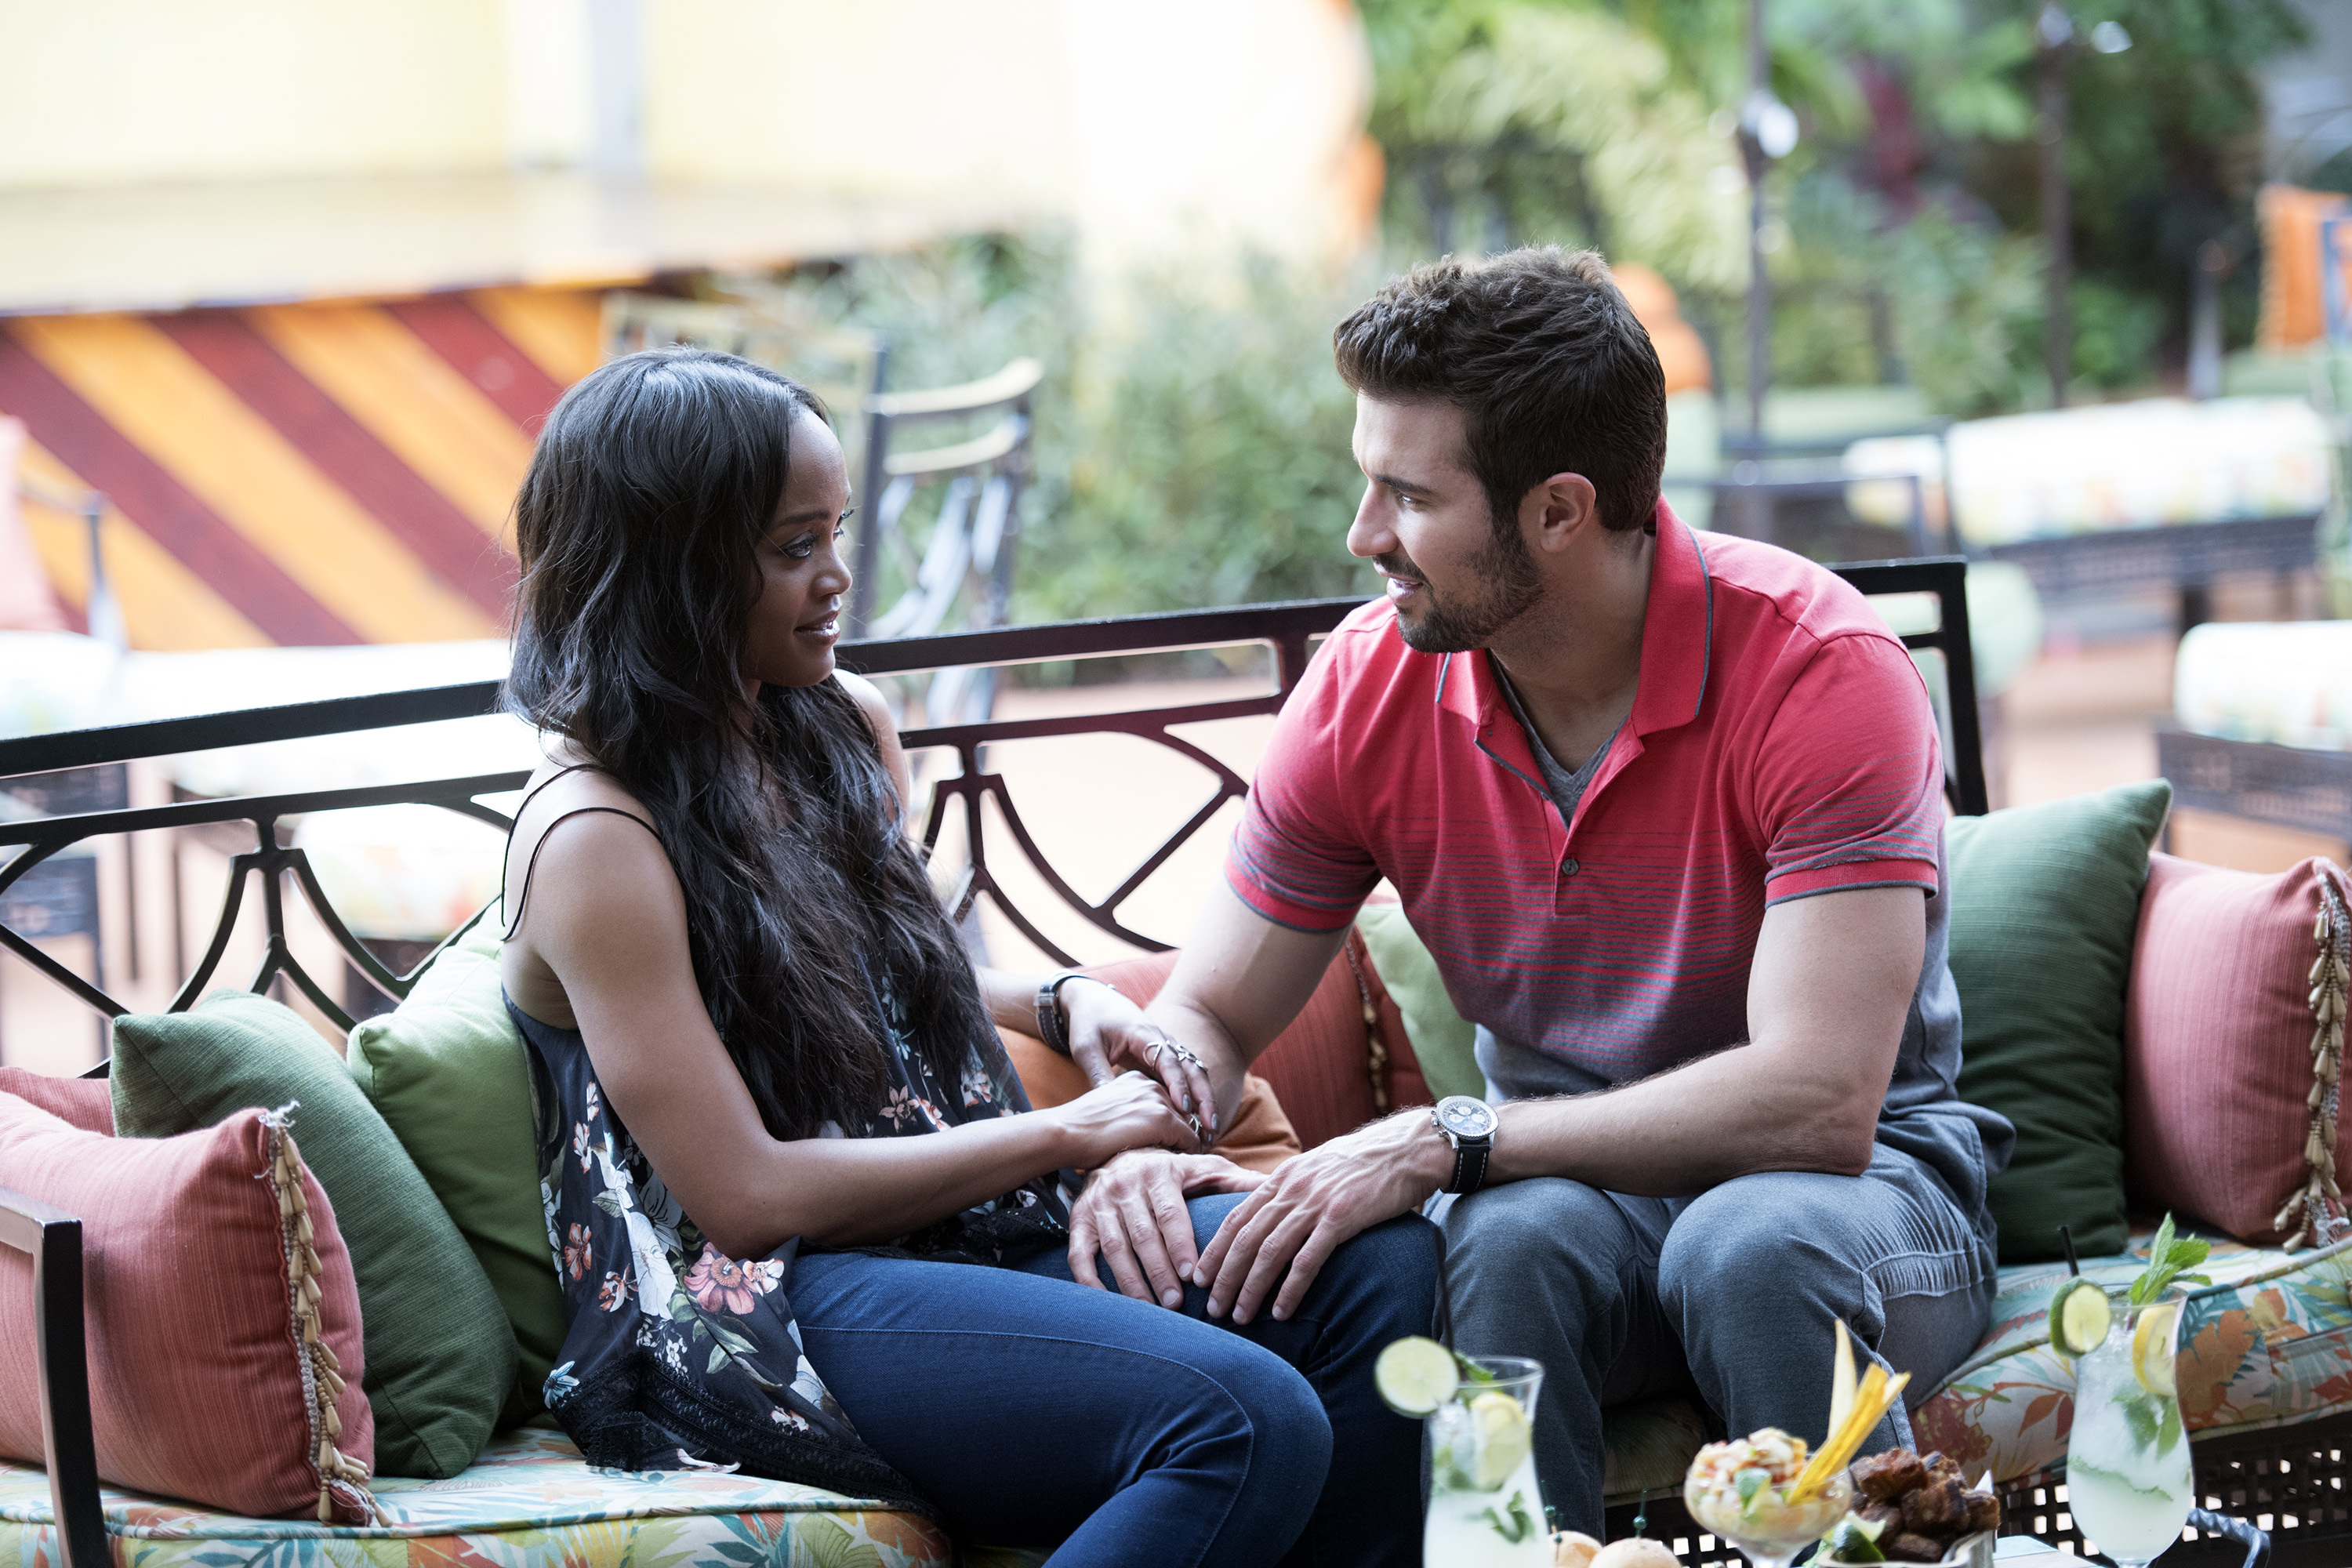 "THE BACHELORETTE - ""Episode 1308"" - Rachel has traveled to romantic locations around the globe in her search to find her soul mate. Now, after adventures in Copenhagen, Oslo and Geneva, she returns to the United States to more uncharted territories: the four hometowns of Eric, Bryan, Peter and Dean. Her spirit and resilience is about to be tested by the men and their loved ones, as she tries to figure out how and why she is falling in love with more than one man at a time. Are all these bachelors marriage material? Rachel will try to find out from the people who know them best, as she moves closer to making her fairytale come true, on ""The Bachelorette,"" MONDAY, JULY 17 (8:00-10:01 p.m. EDT), on The ABC Television Network. (ABC/Rodrigo Varela) RACHEL LINDSAY, BRYAN"